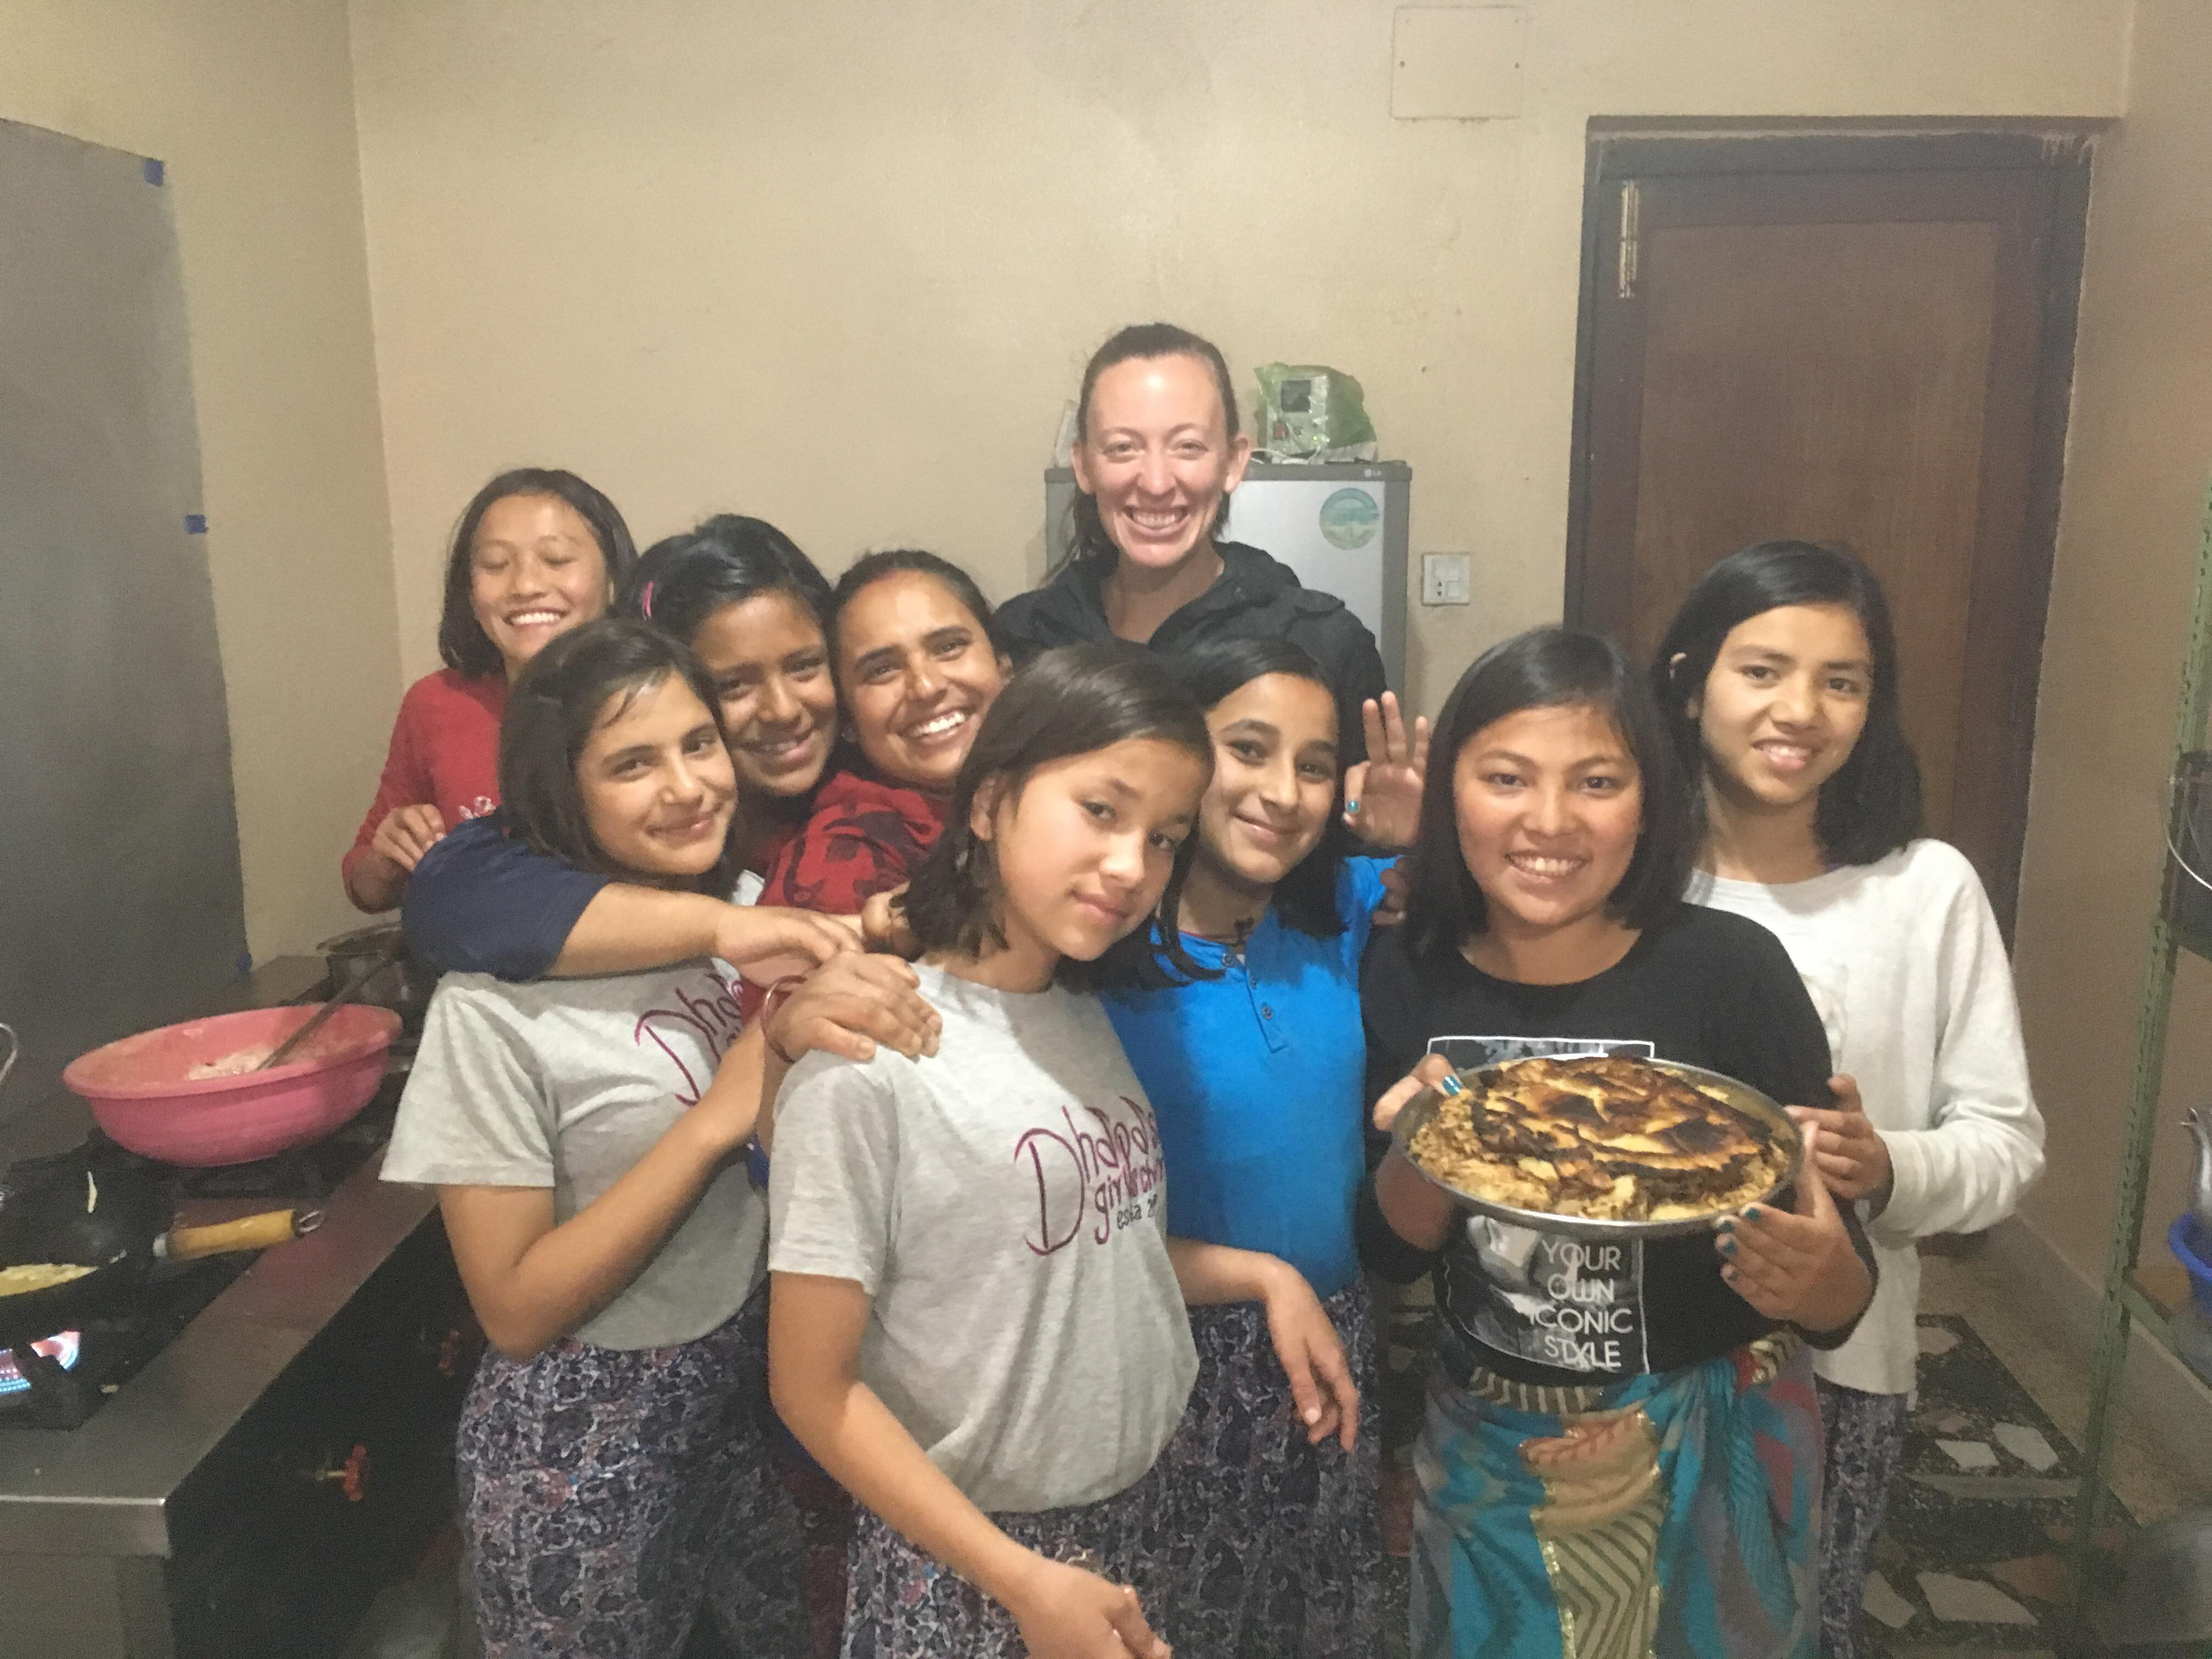 Self Help Nepal volunteer Dani Edgar with some of the children from Home of Hope in Kathmandu, Nepal after cooking some food together at their home.